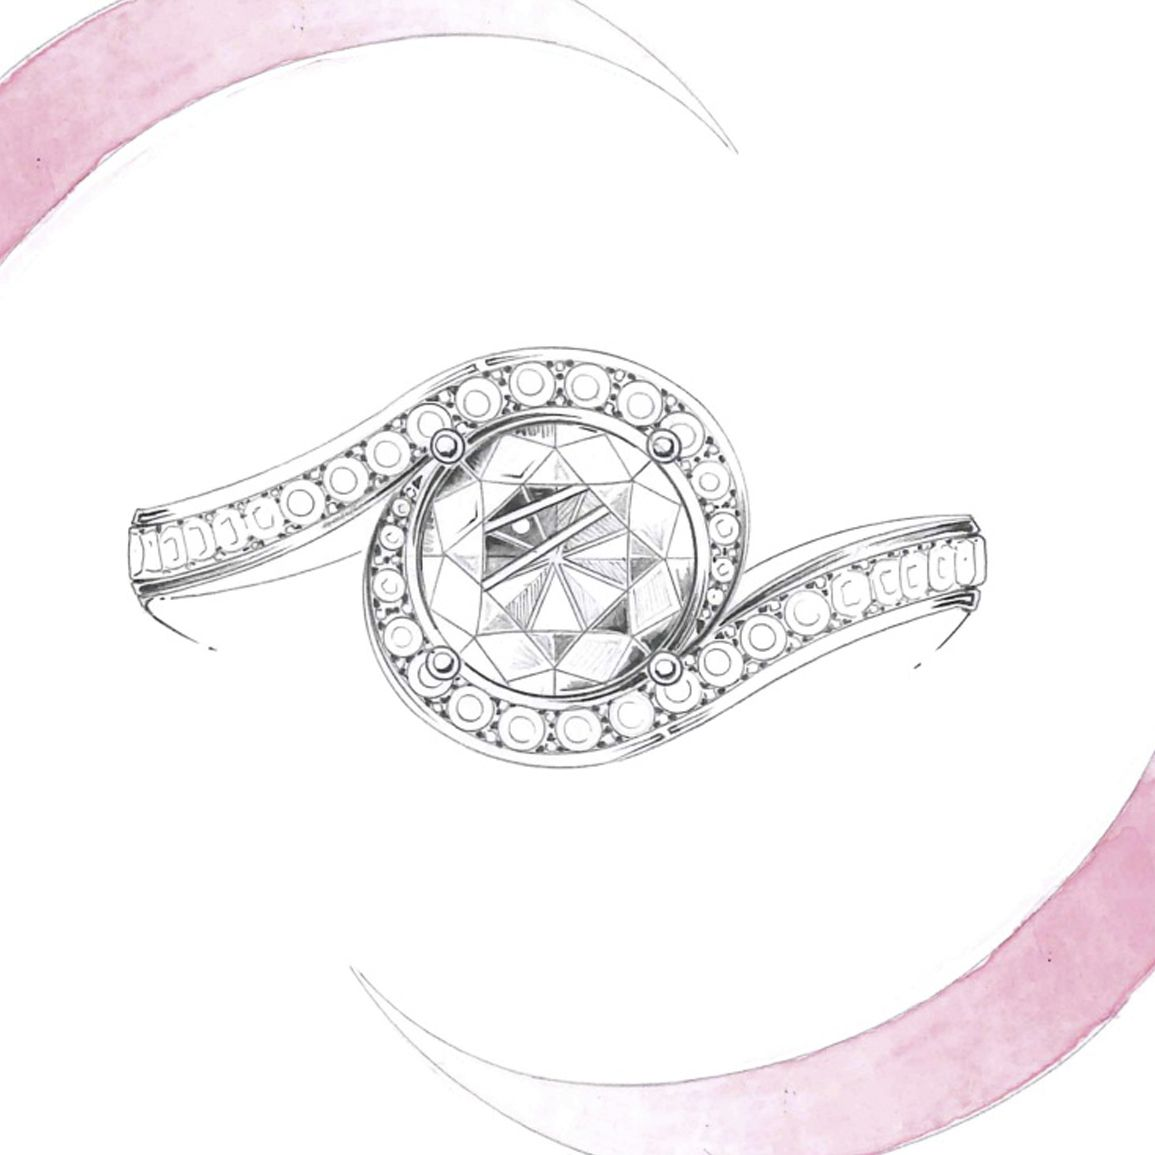 De beers caress sketch gouachés sketches jewelry pinterest de